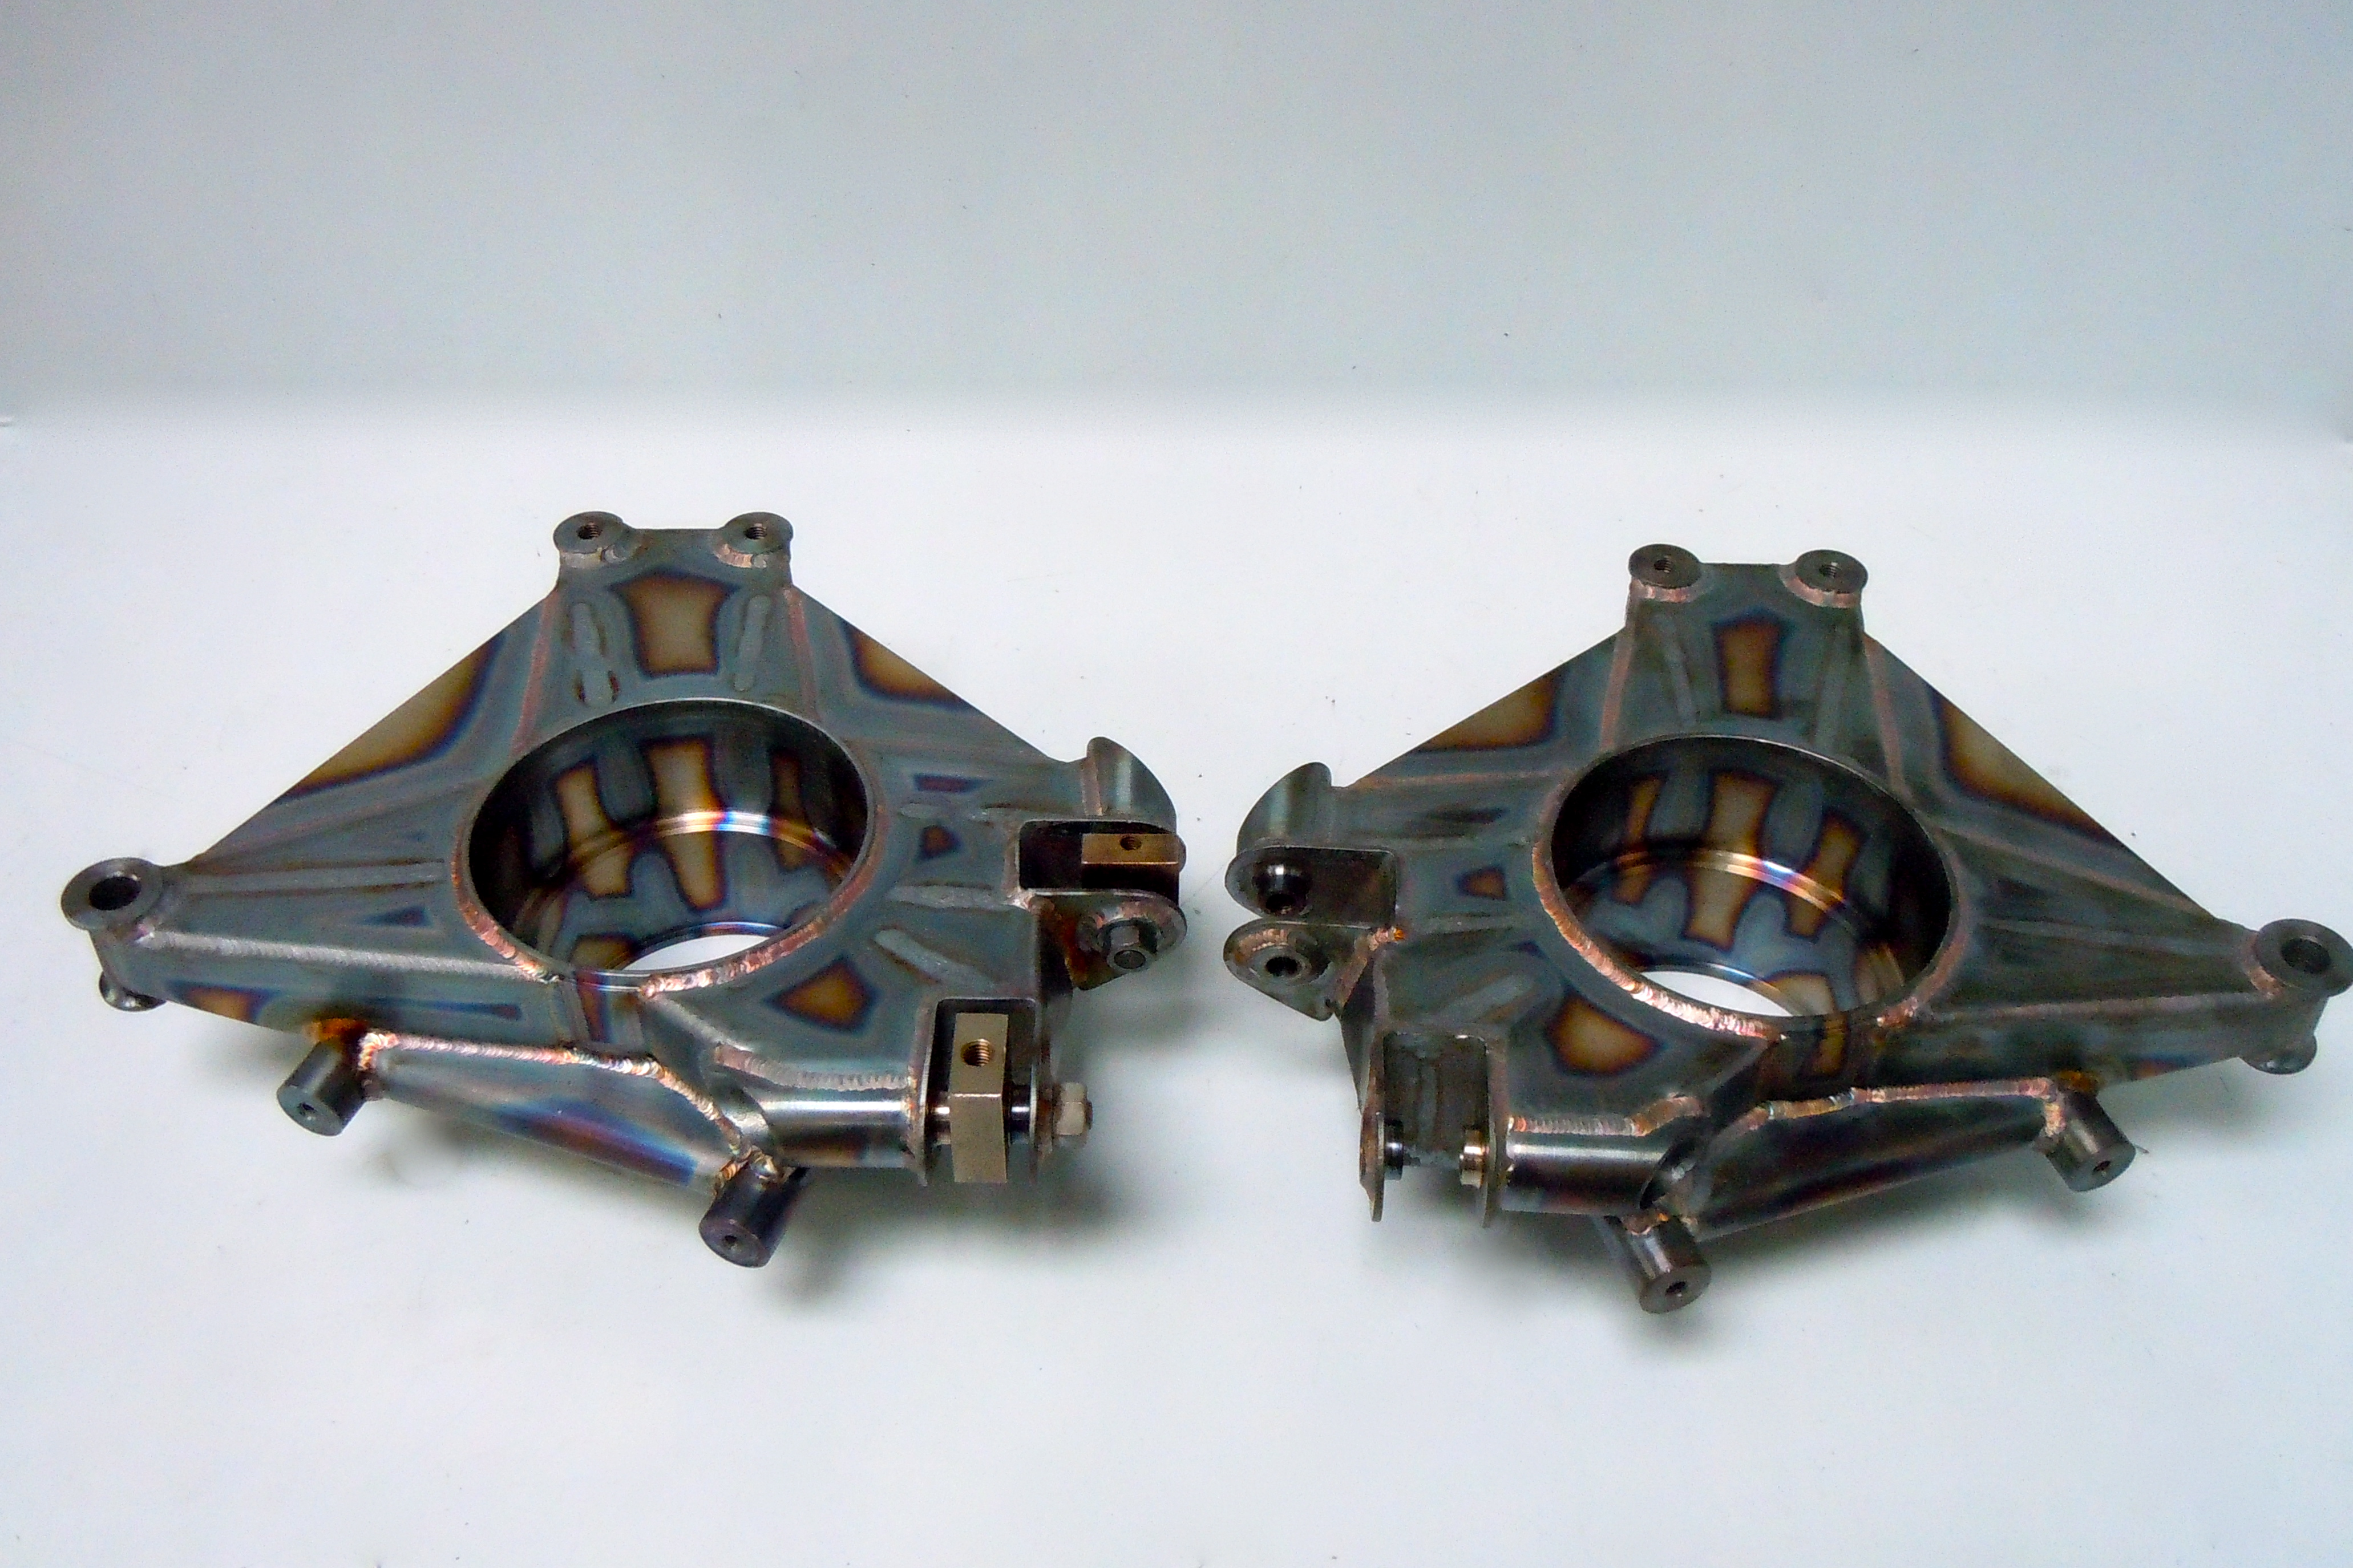 Uprights - Fabricated by TKD Engineering, welded by Concept Racing